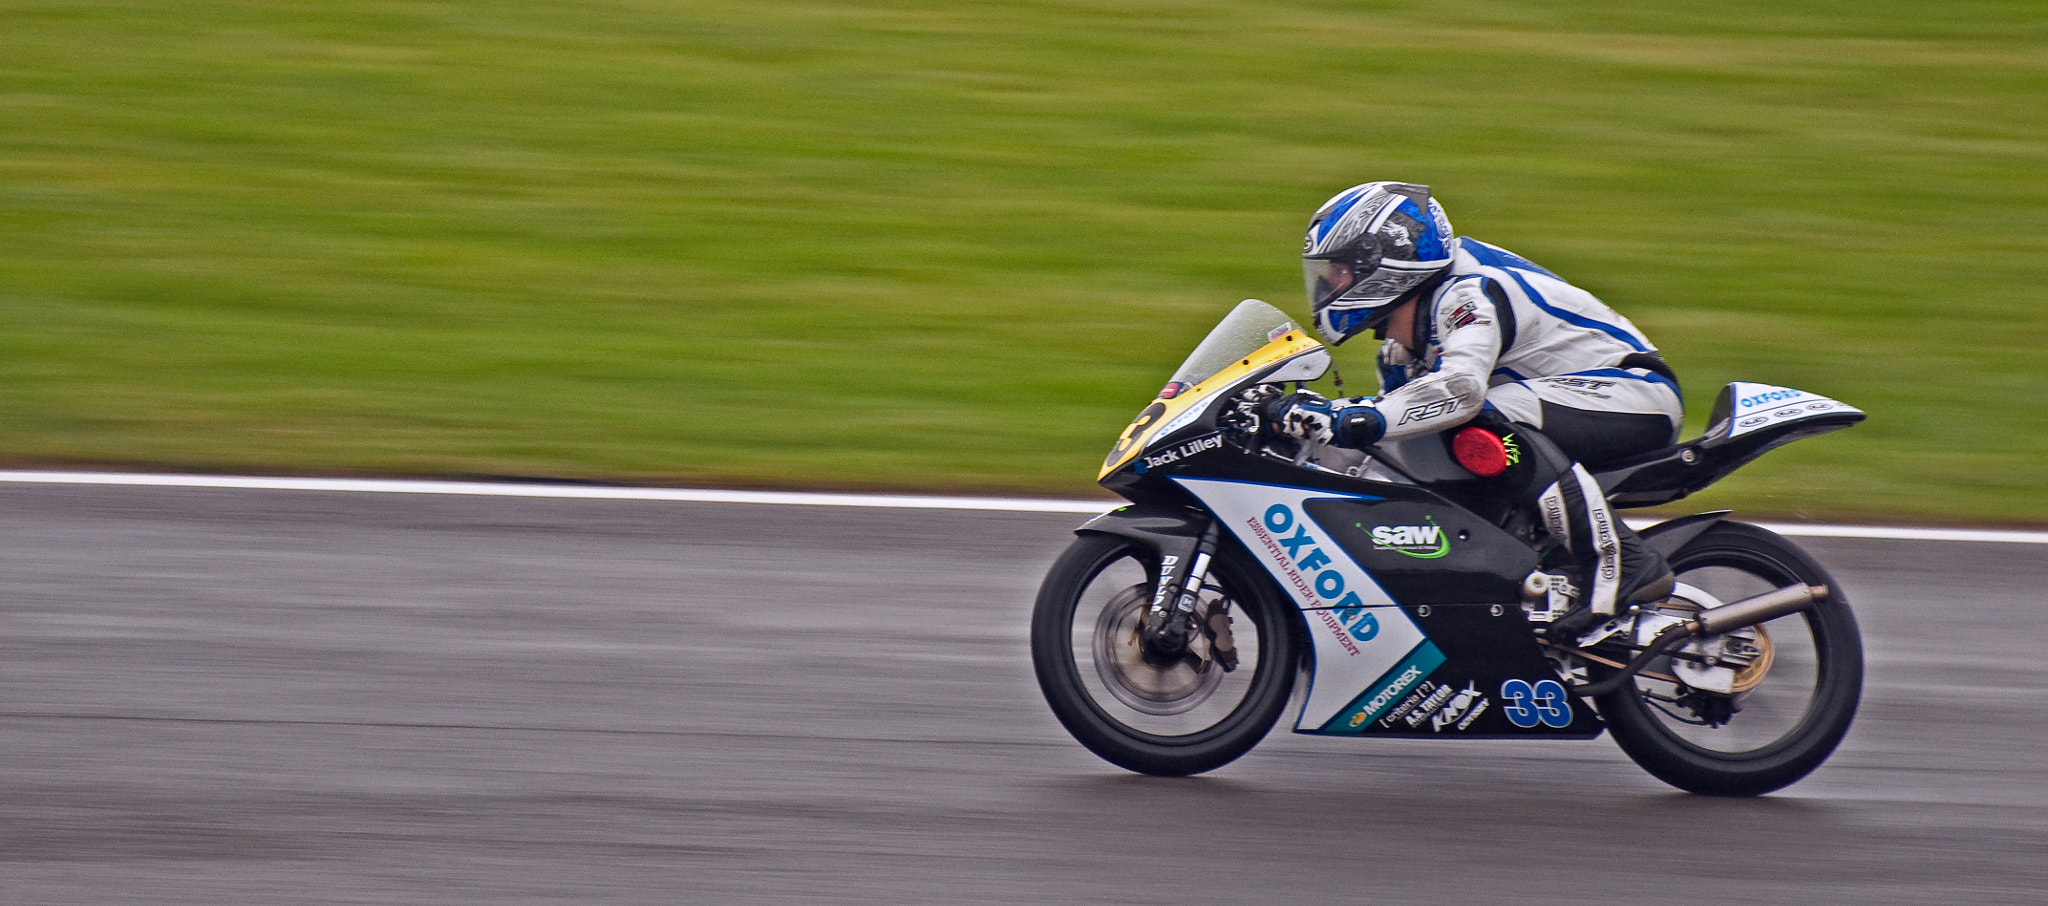 Photograph 125cc @ Silverstone 2010 by Rob Bunday on 500px